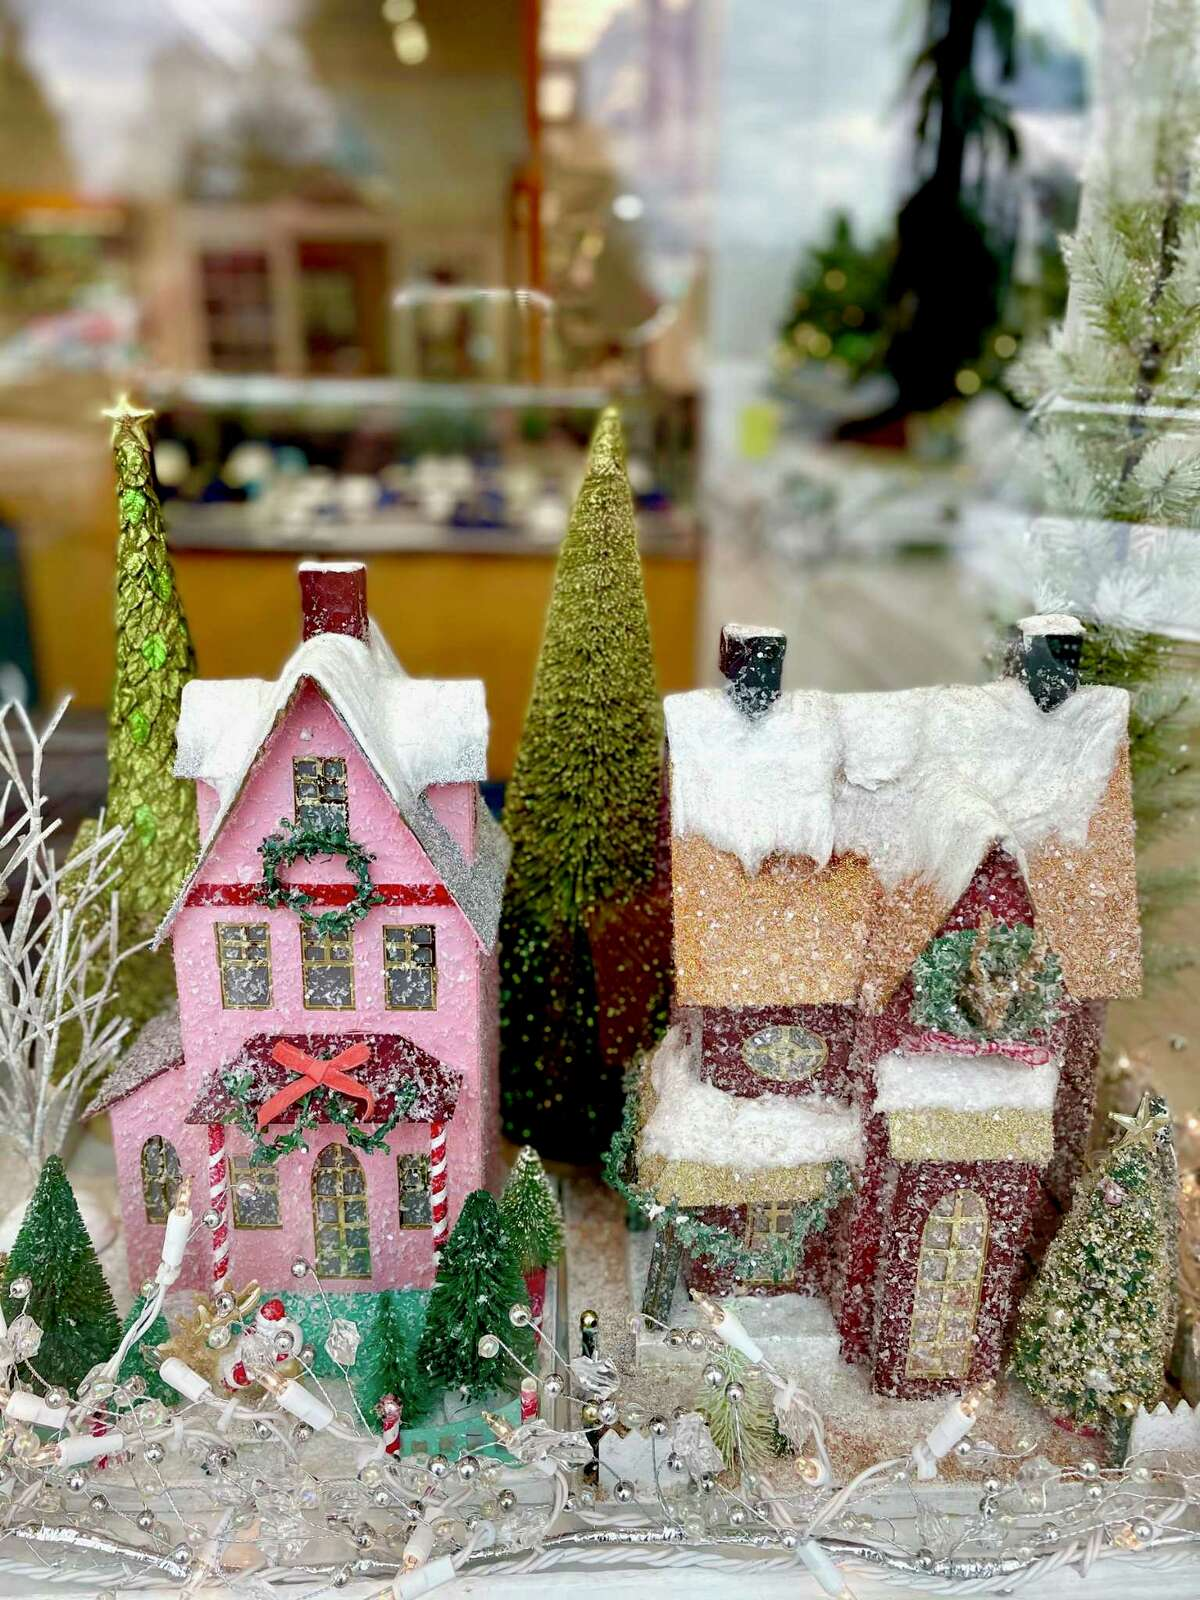 Lawrence Jeffrey Jewelers on West Street in Litchfield is displaying a collection of bright little houses this year.